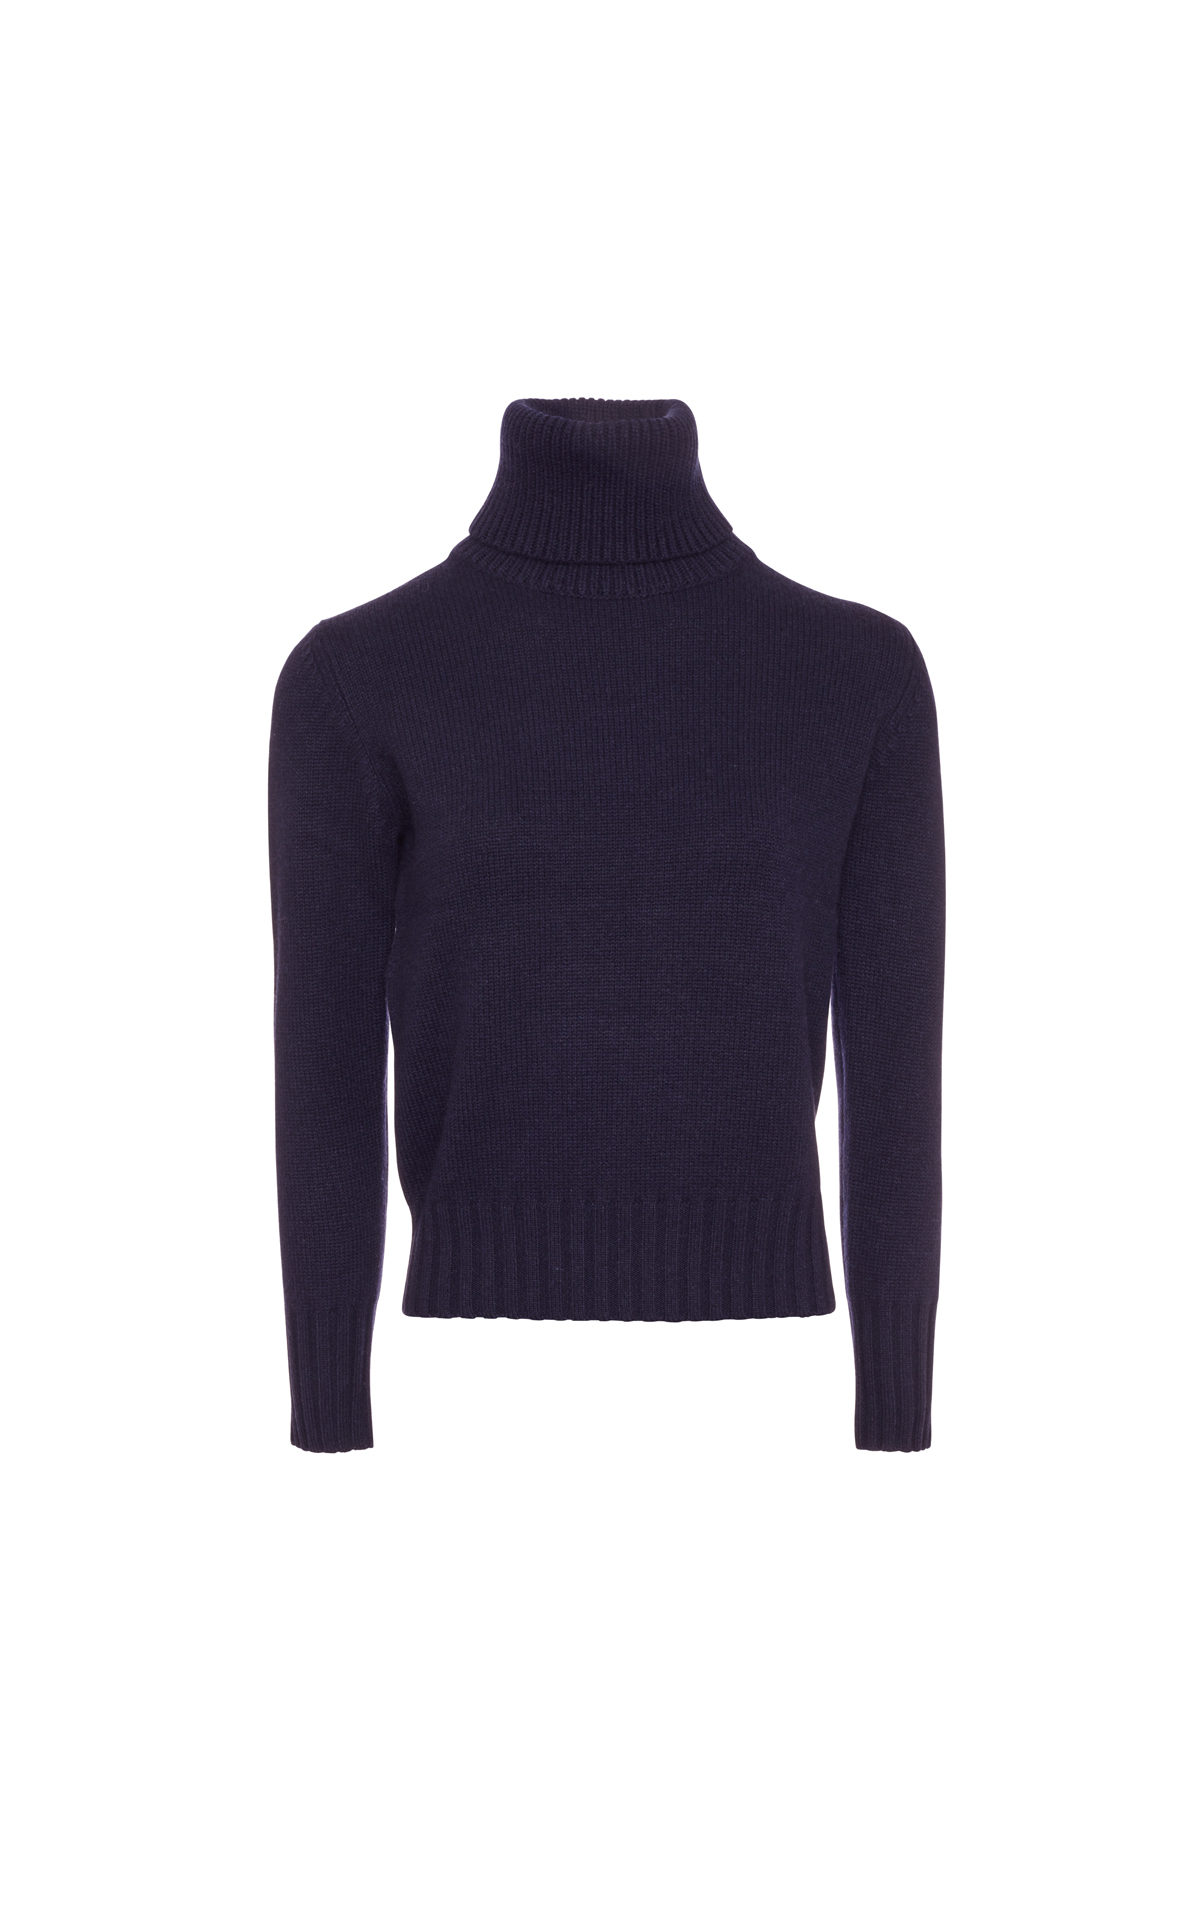 N.Peal  Chunky roll neck navy from Bicester Village